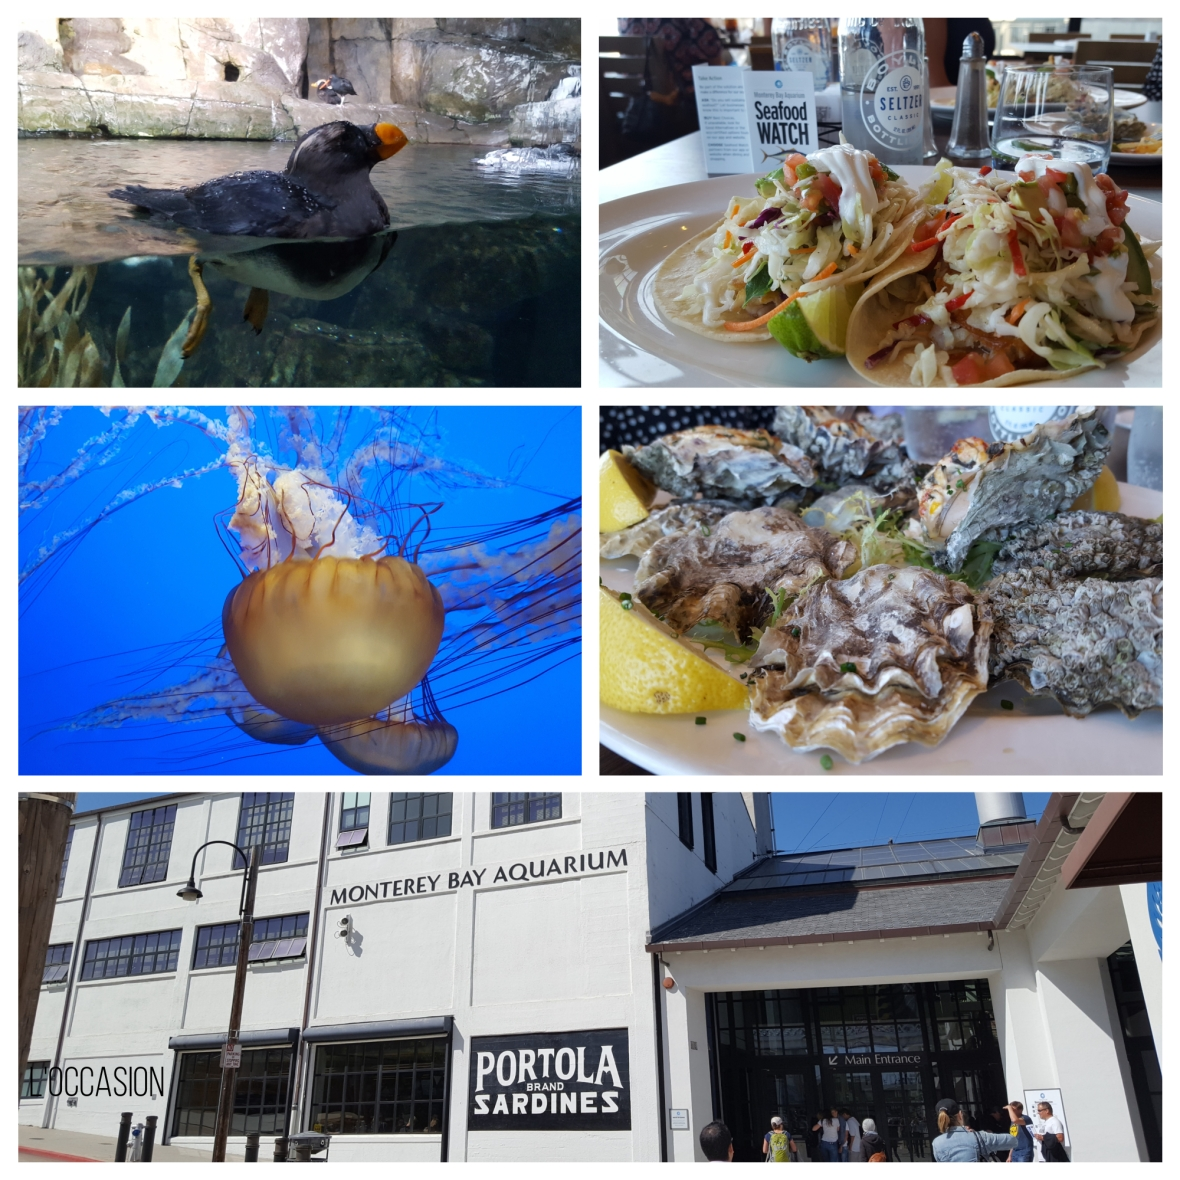 sea life, seafood, sustainable sea food, sea food watch